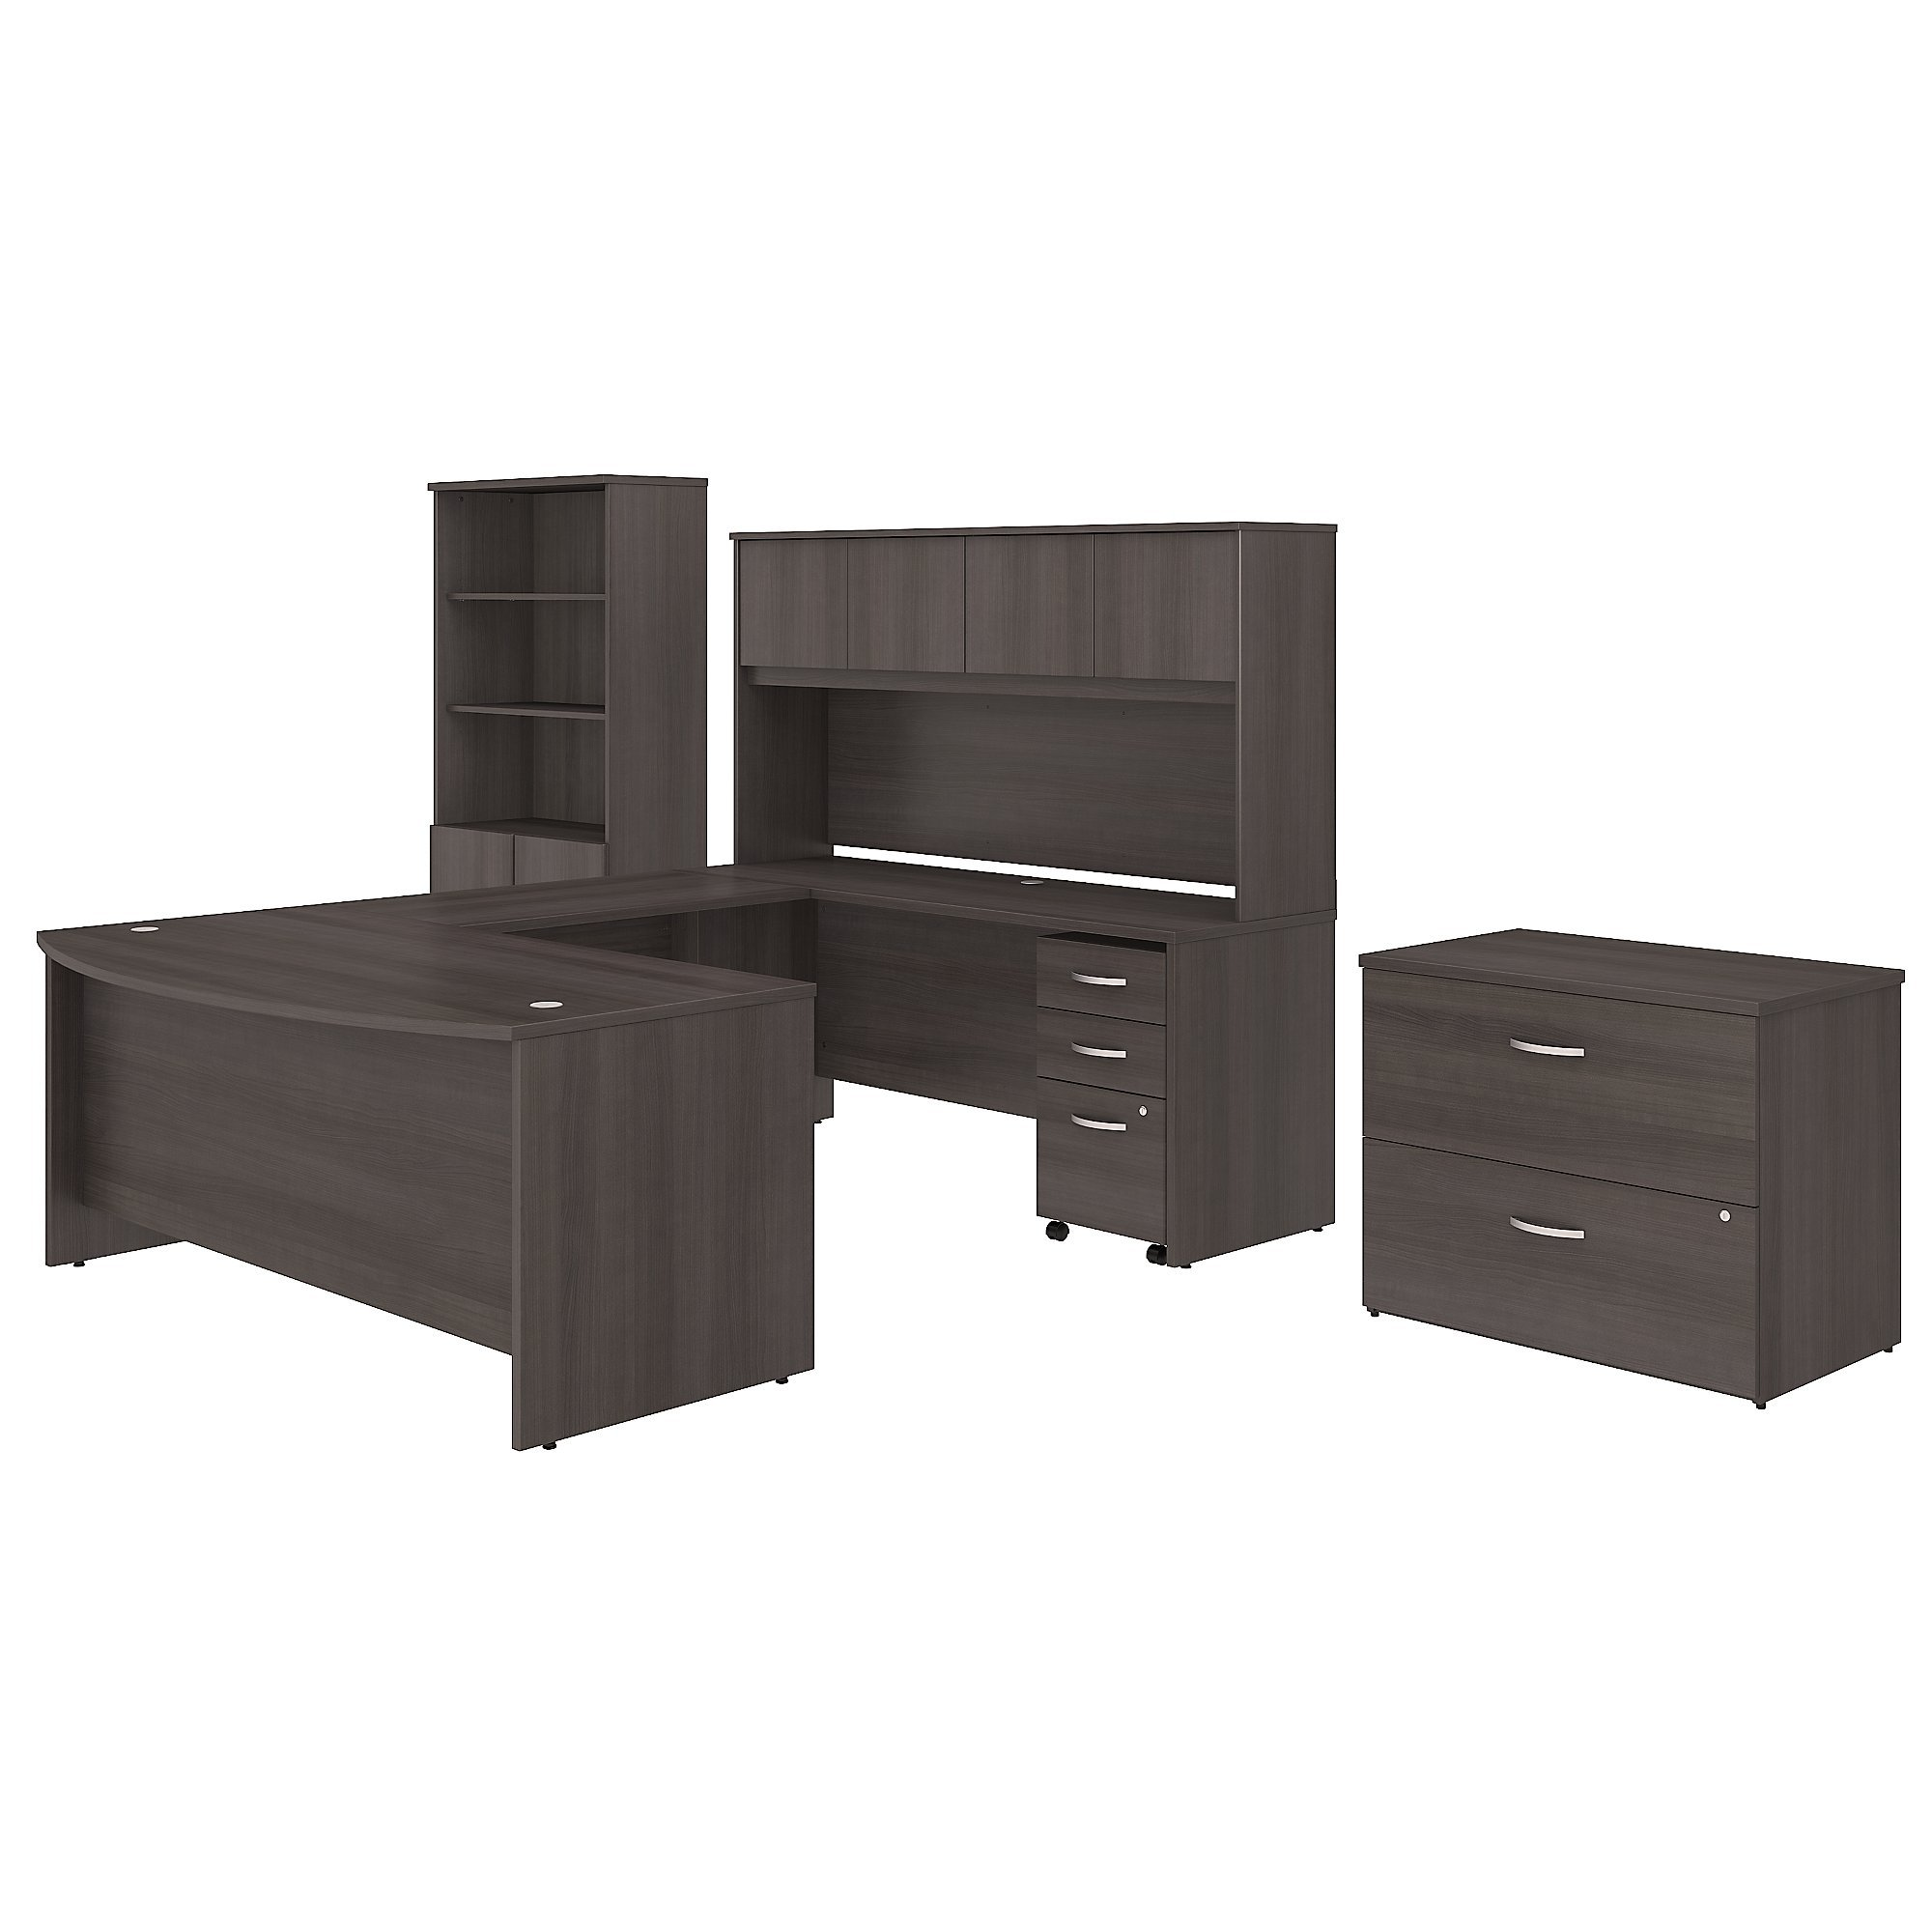 Studio C 72W x 36D U Shaped Desk with Hutch, Bookcase and File Cabinets in Storm Gray by Bush Business Furniture